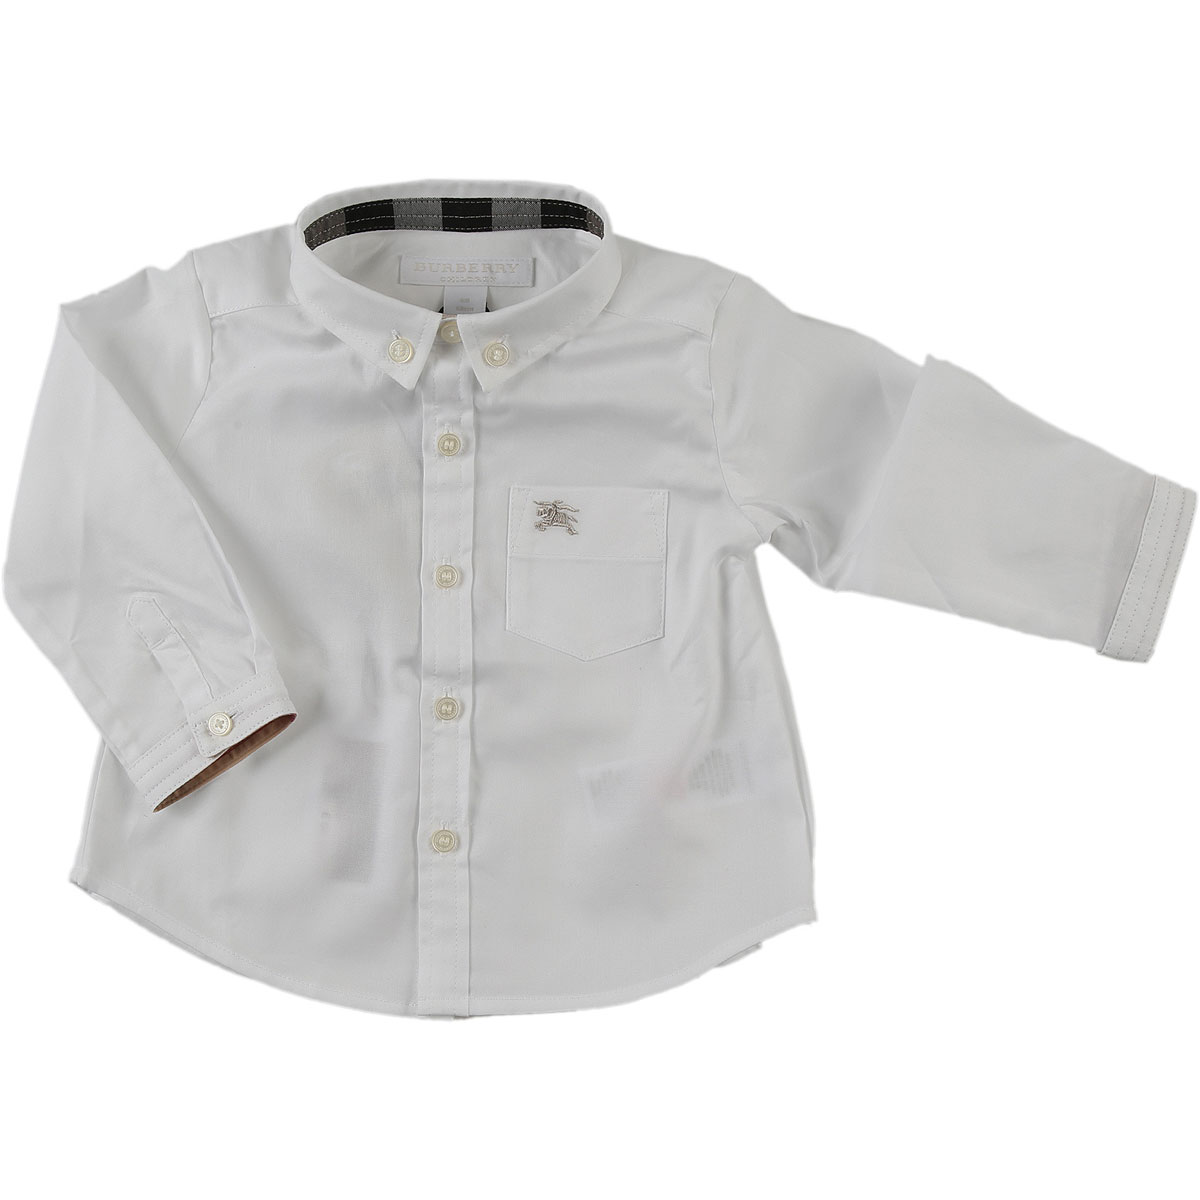 Image of Burberry Baby Shirts for Boys, White, Cotton, 2017, 12M 18M 2Y 3Y 6M 9M